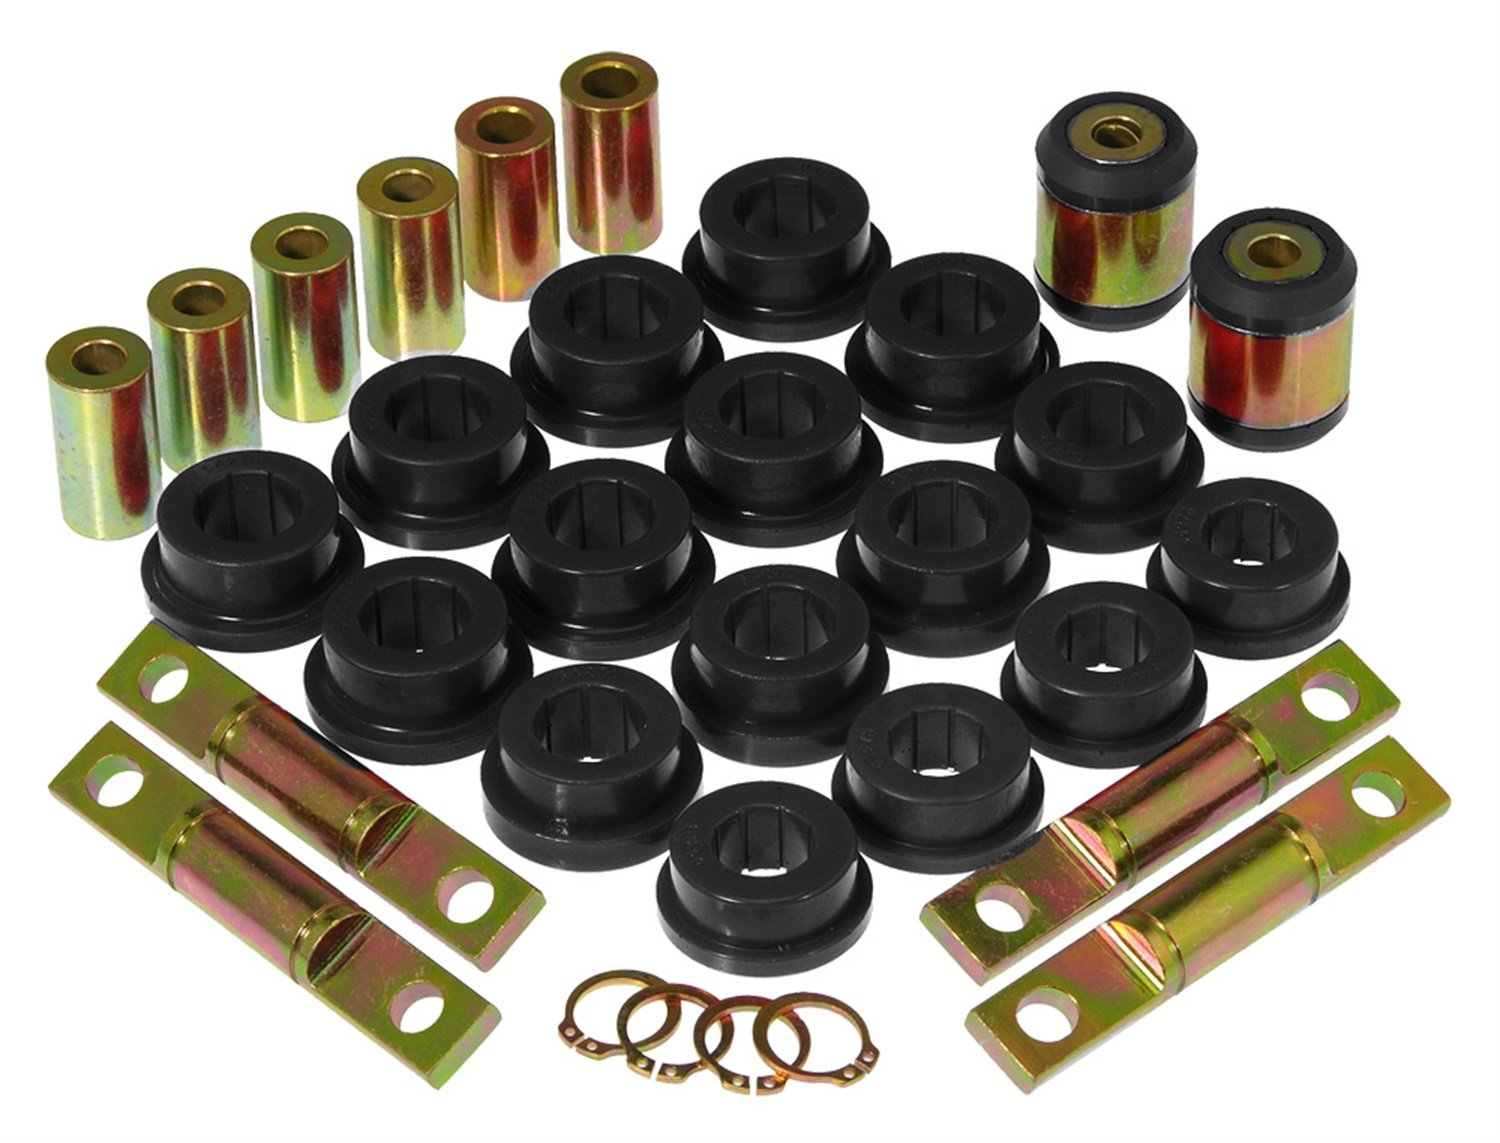 Prothane 8-318-BL Black Rear Upper and Lower Control Arm Bushing Kit